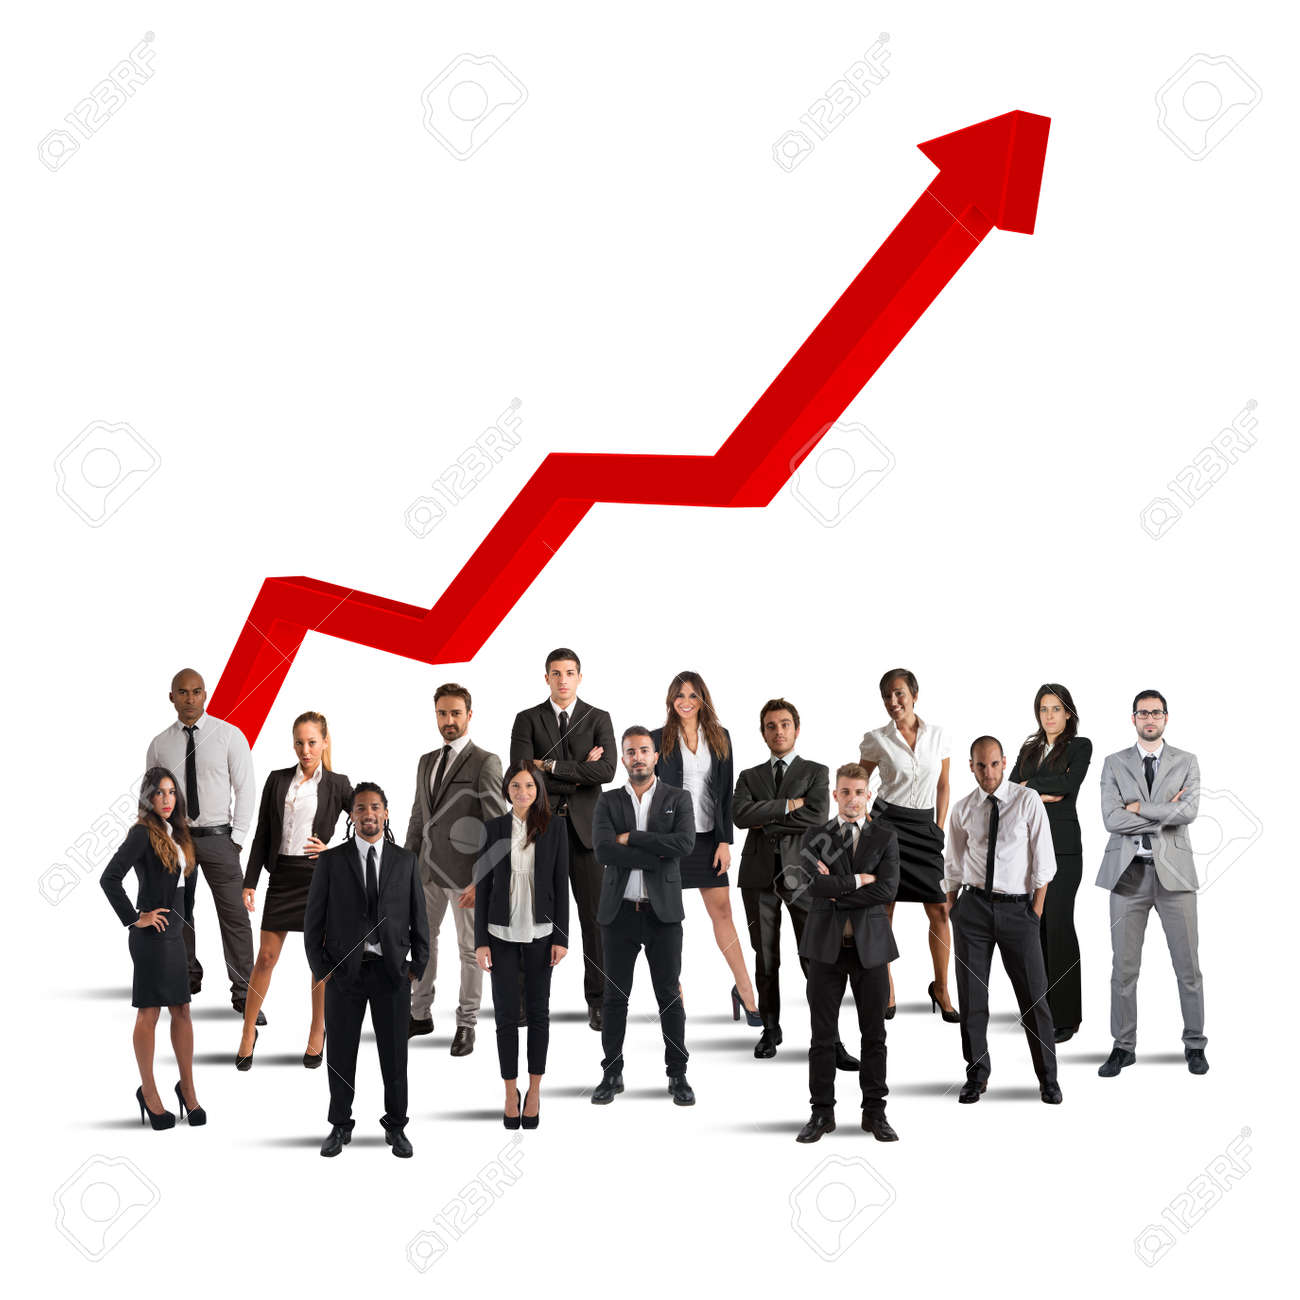 Businesspeople Of Successful Company Stock Photo, Picture And Royalty Free  Image. Image 72163883.